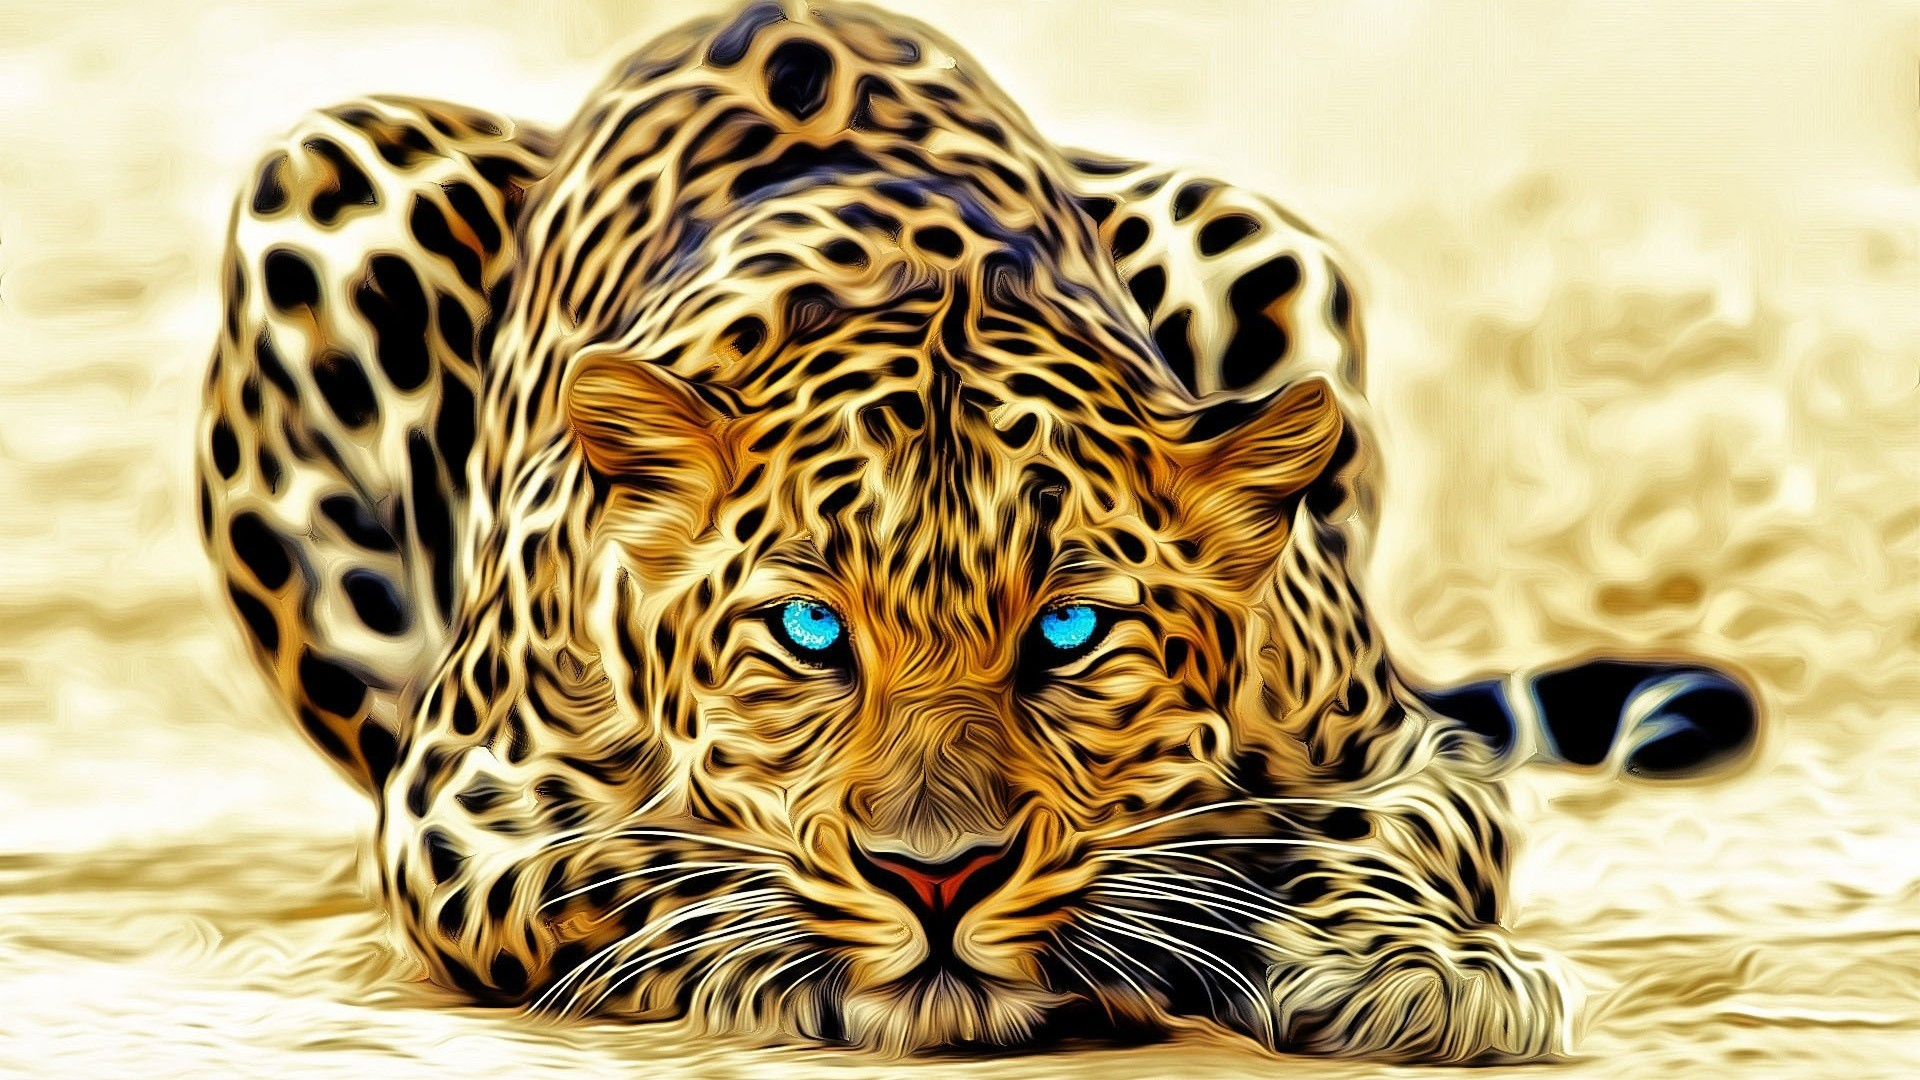 1920x1080 Leopard 3D Wallpaper Screensaver download 3d desktop wallpapers